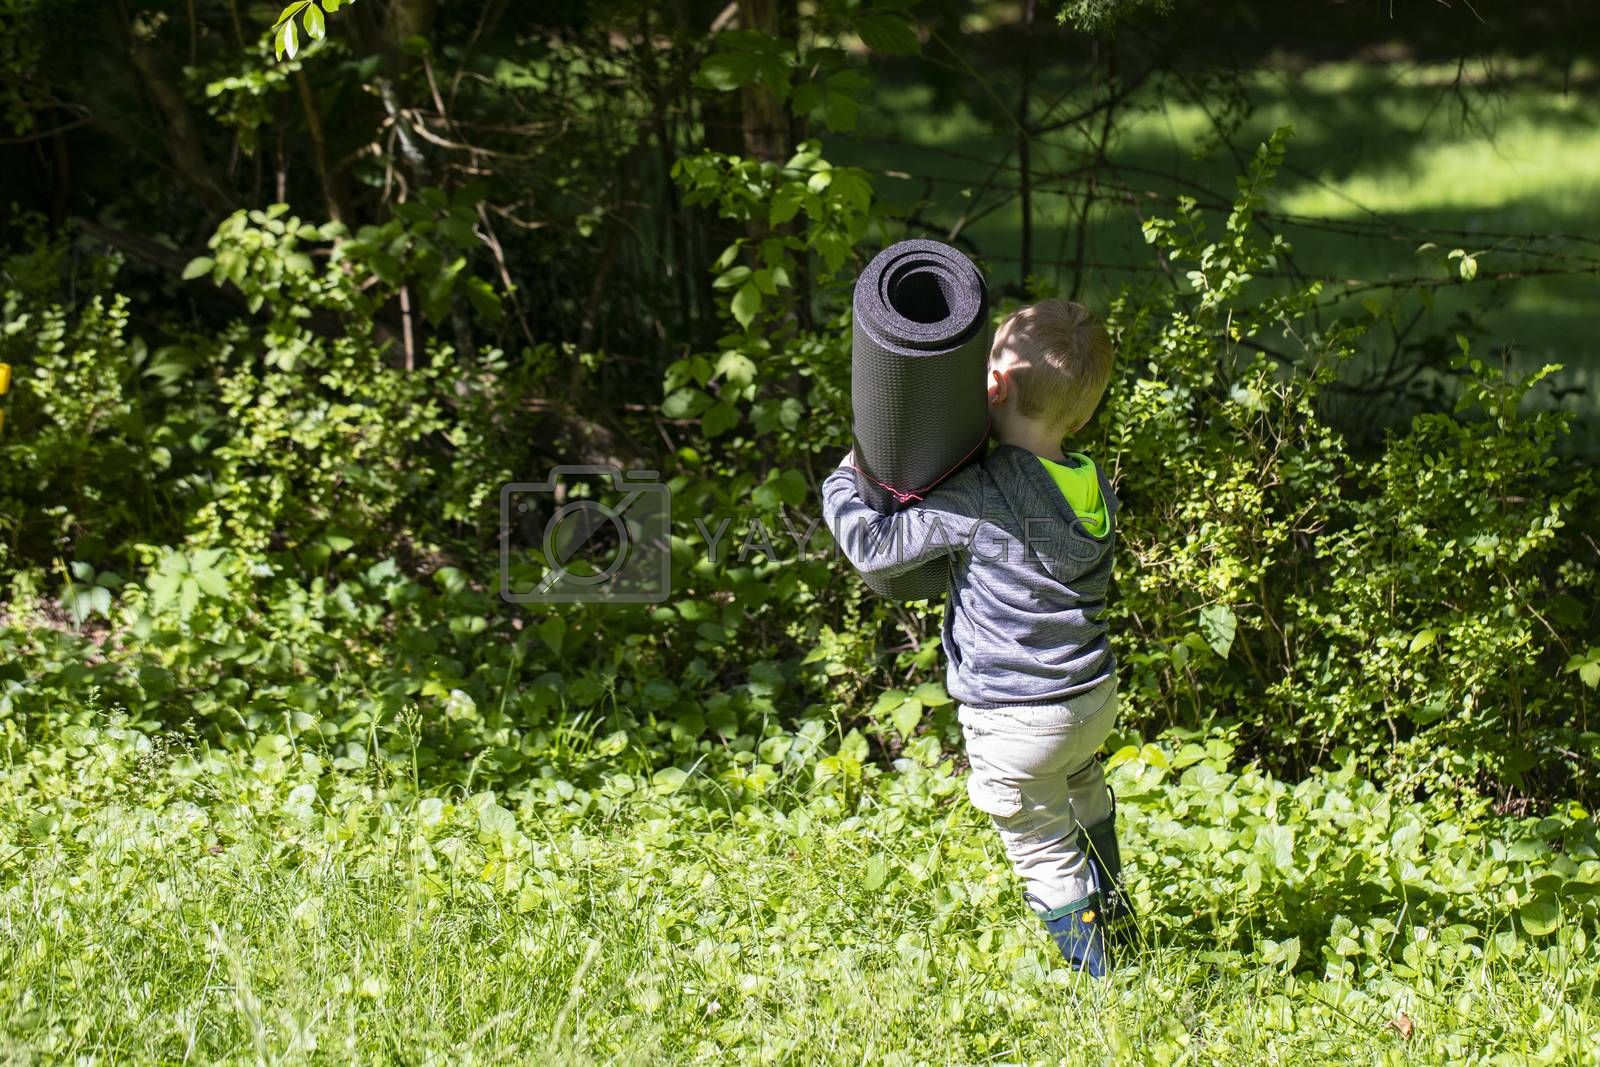 Male toddler carries rolled up mat through the grass.